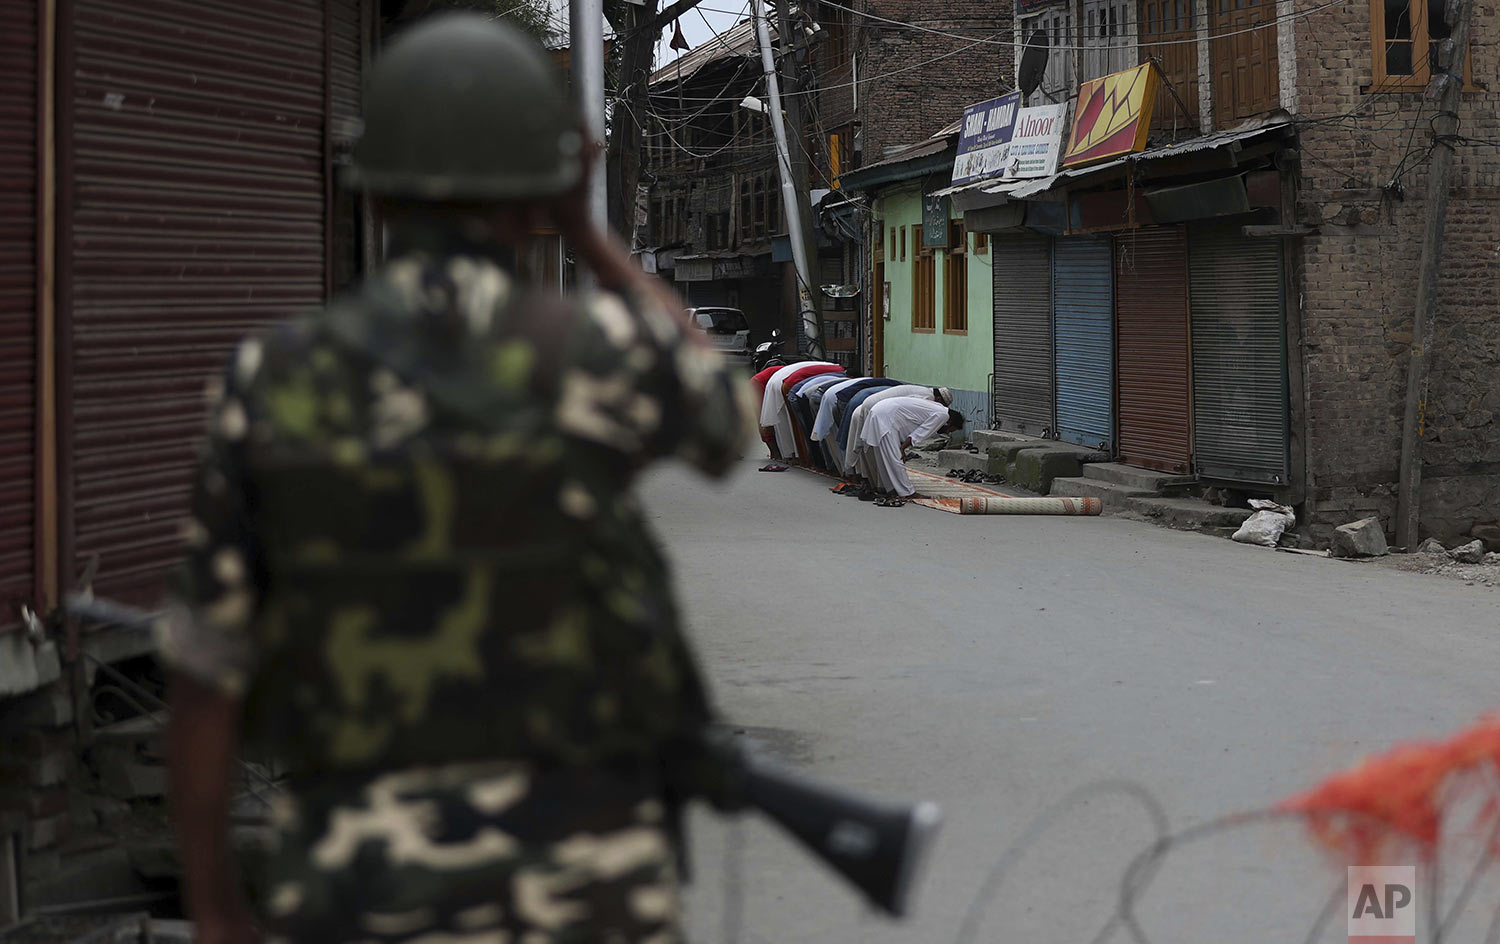 An Indian paramilitary soldier stands guard as Kashmiri Muslims offer Friday prayers on a street outside a local mosque during curfew like restrictions in Srinagar, India, Friday, Aug. 16, 2019. (AP Photo/Mukhtar Khan)